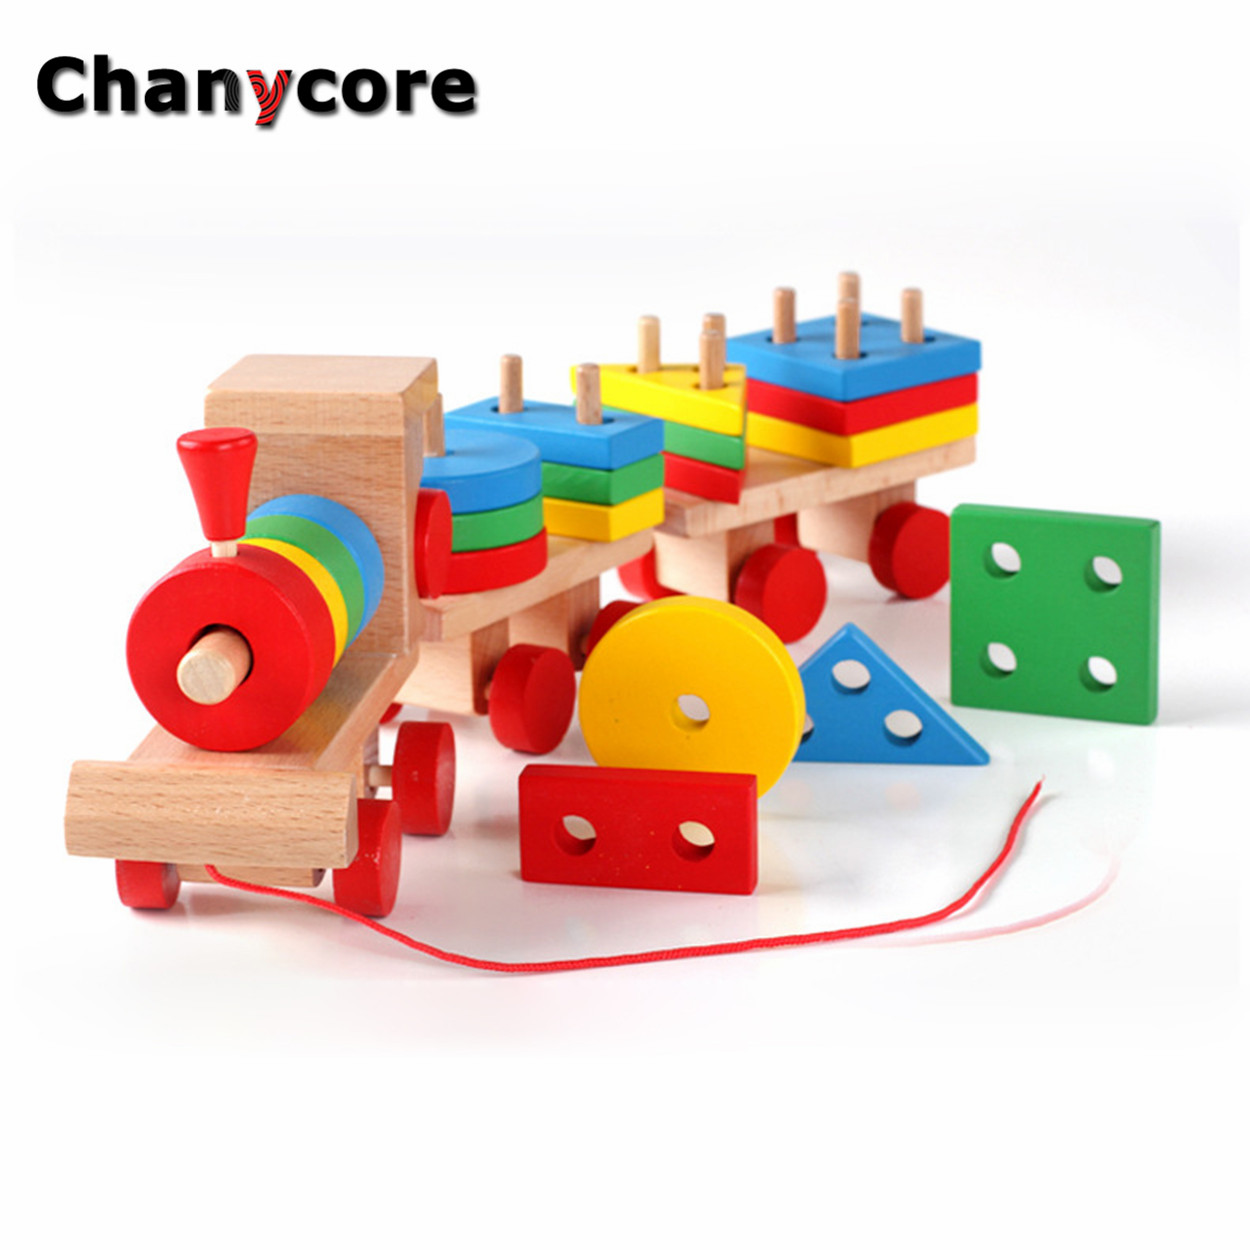 Baby Learning Educational Wooden Toys Geometric Shape Blocks Column Board Train Sorting Matching qzm Montessori Kids Gifts 4094